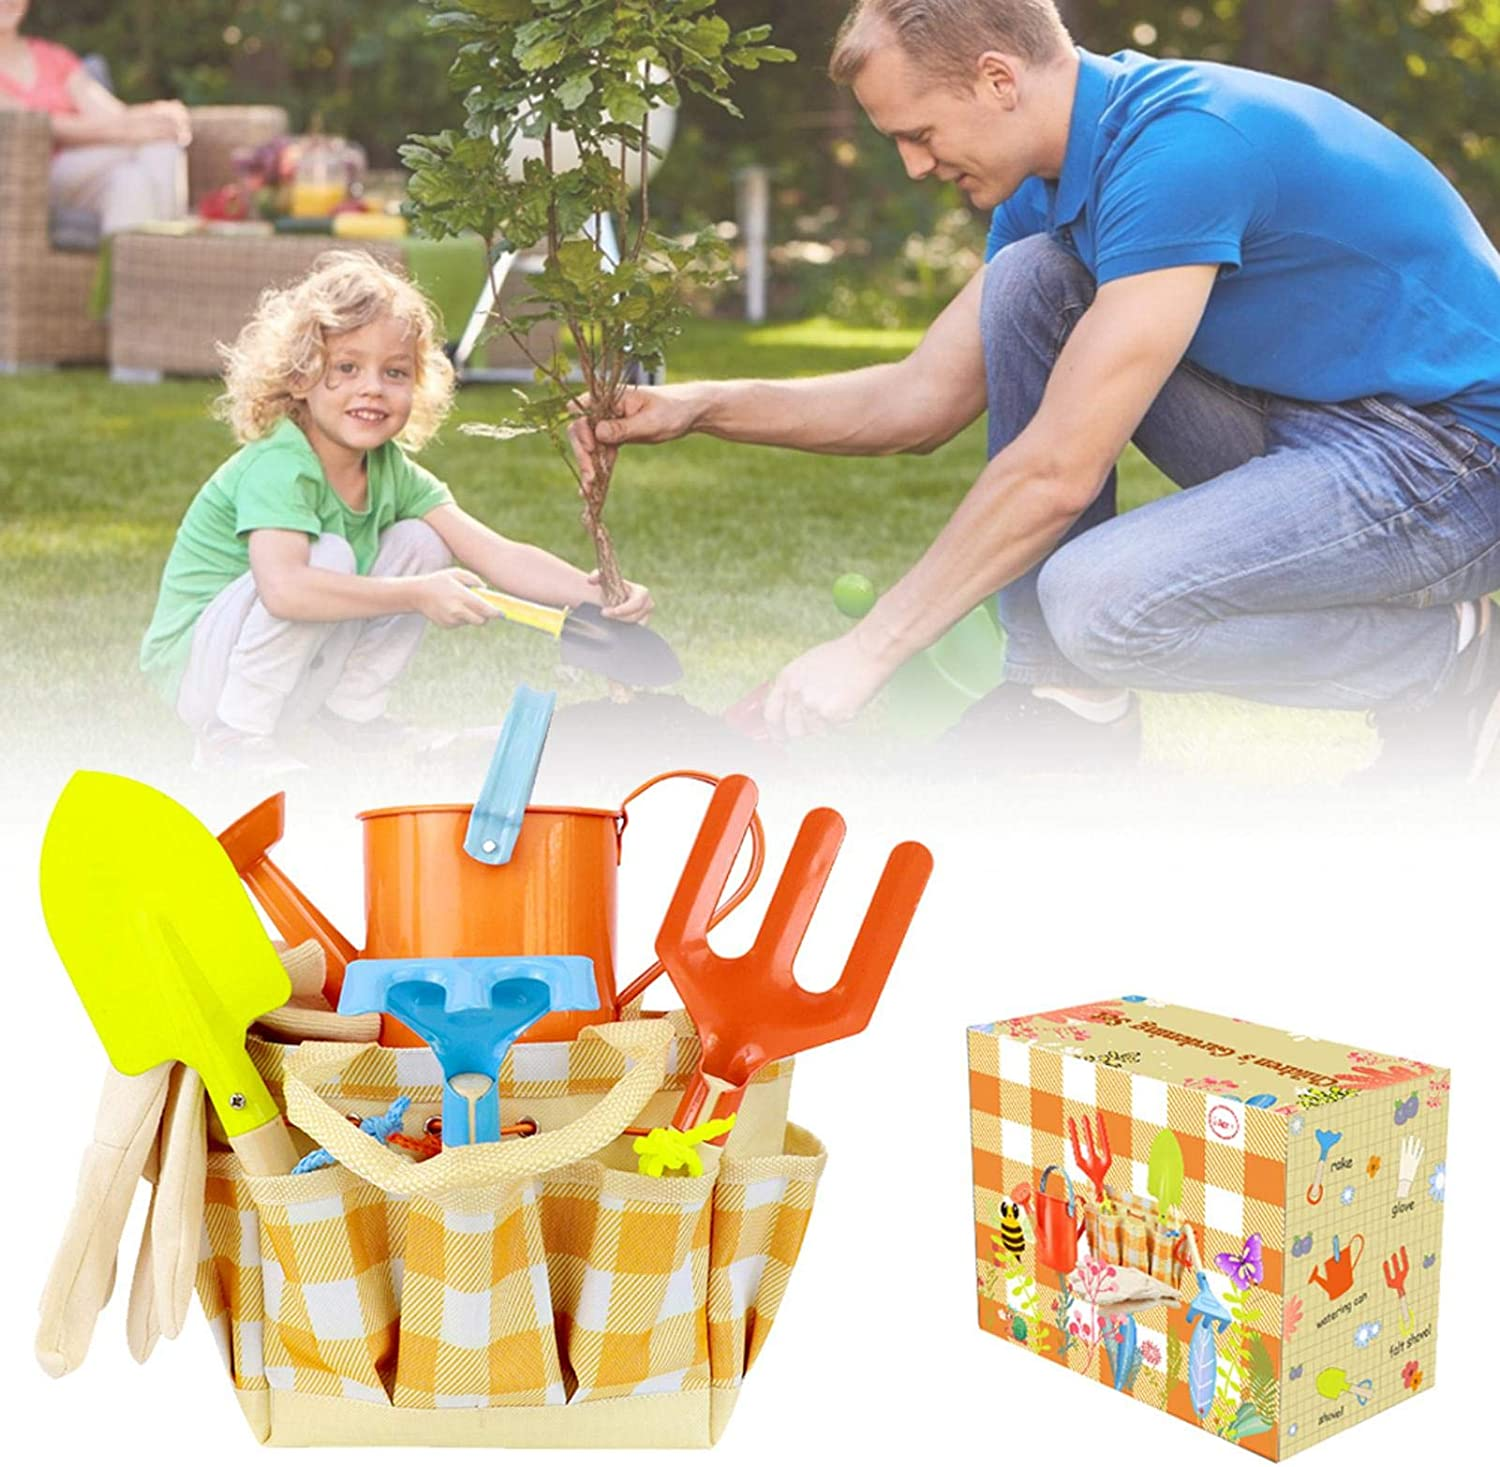 Garden Tool Set for Kids with Watering Can Rake and Gardening Tote,Gardening Tools for Kids Outdoor Toys Gift Shovel Kids Gardening Tools Shovel MTAPH Kids Gardening Tool Set Gardening Gloves